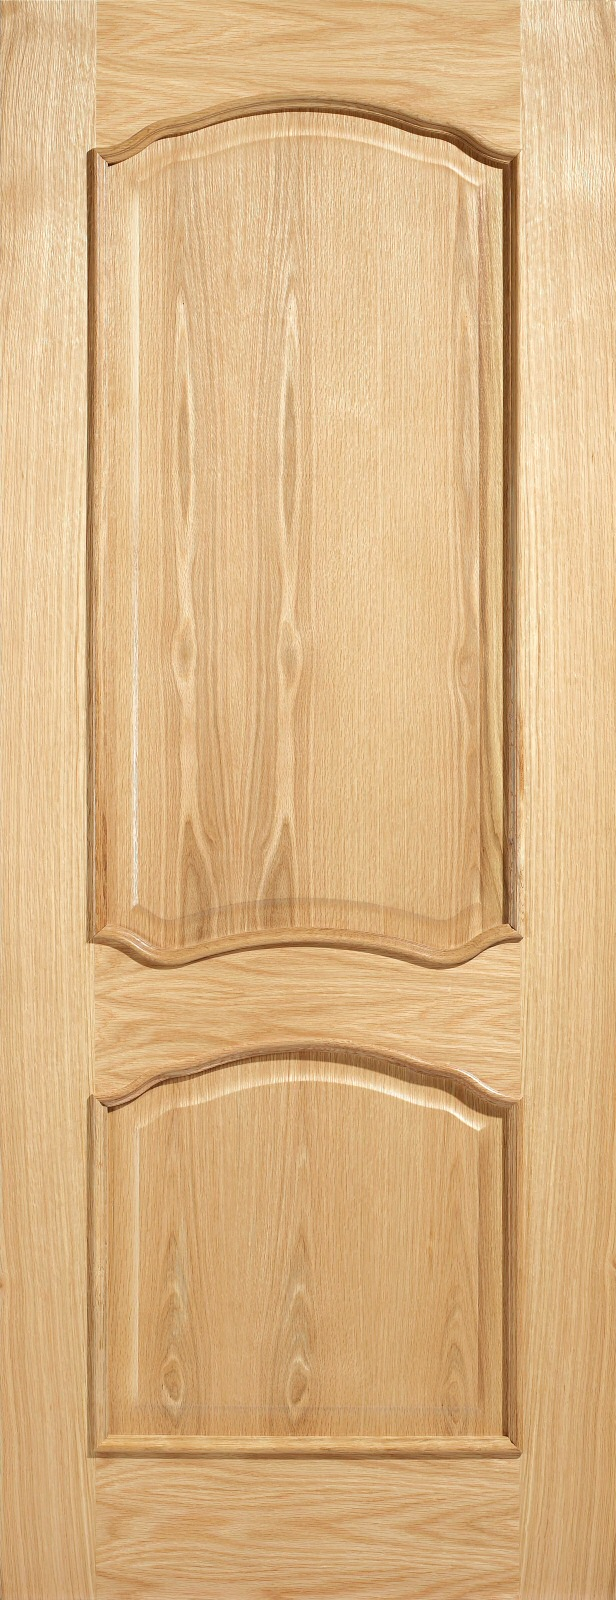 826 x 2040 Pre-Finished Louis Oak Two Panel Bolection Moulding Door